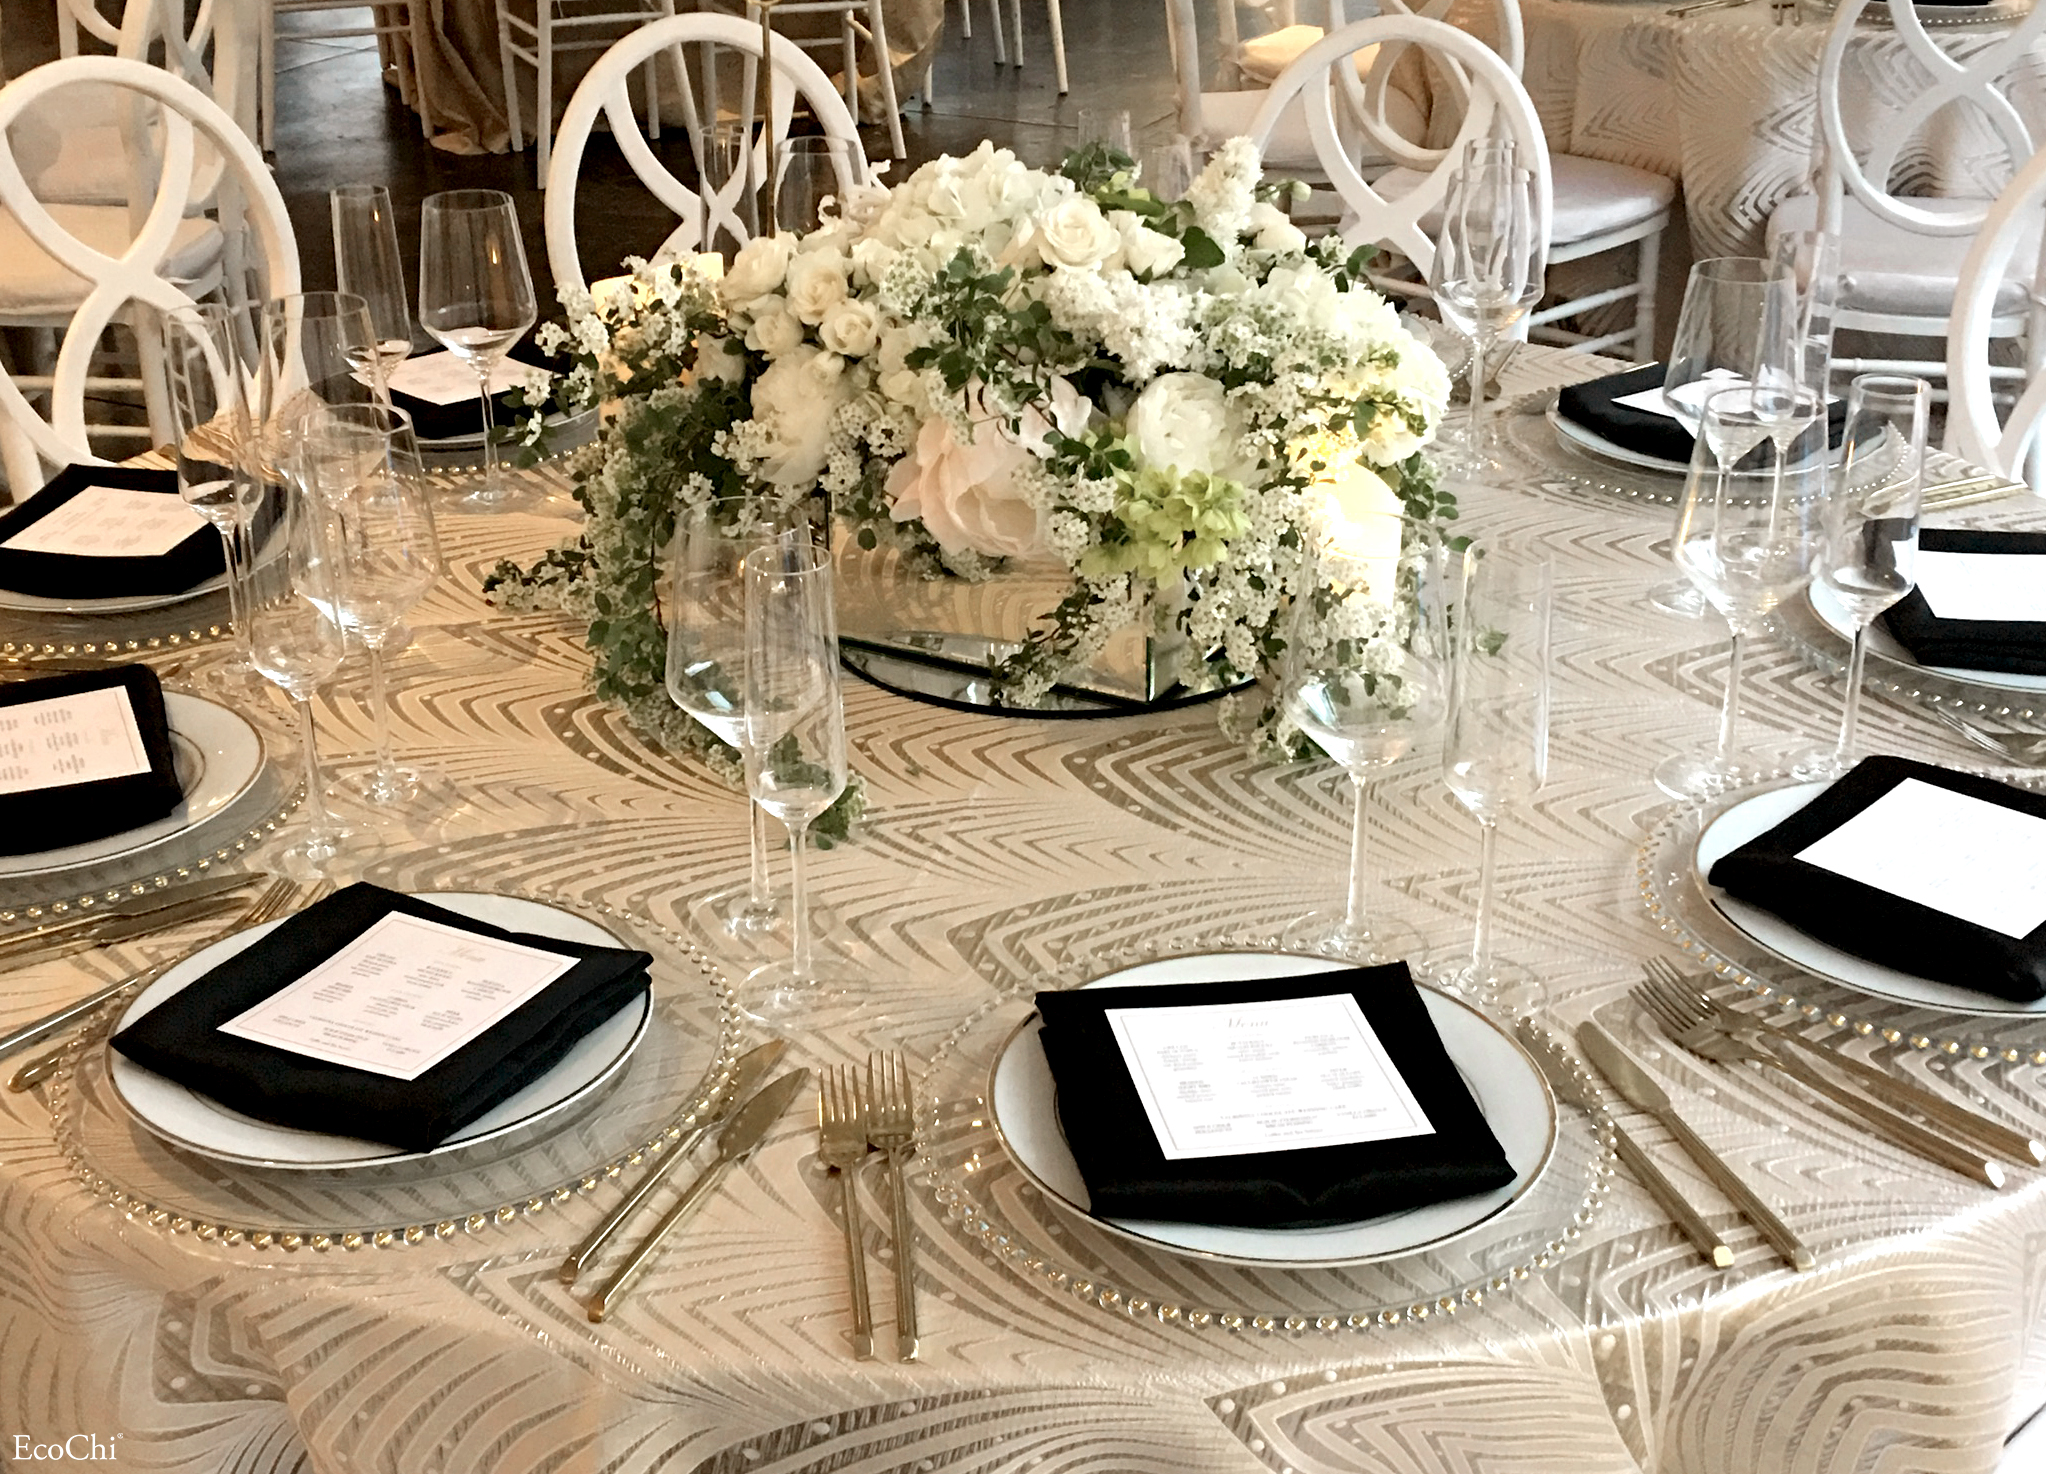 WEDDING TABLE SETTING DESIGN- INDUSTRIA NYC